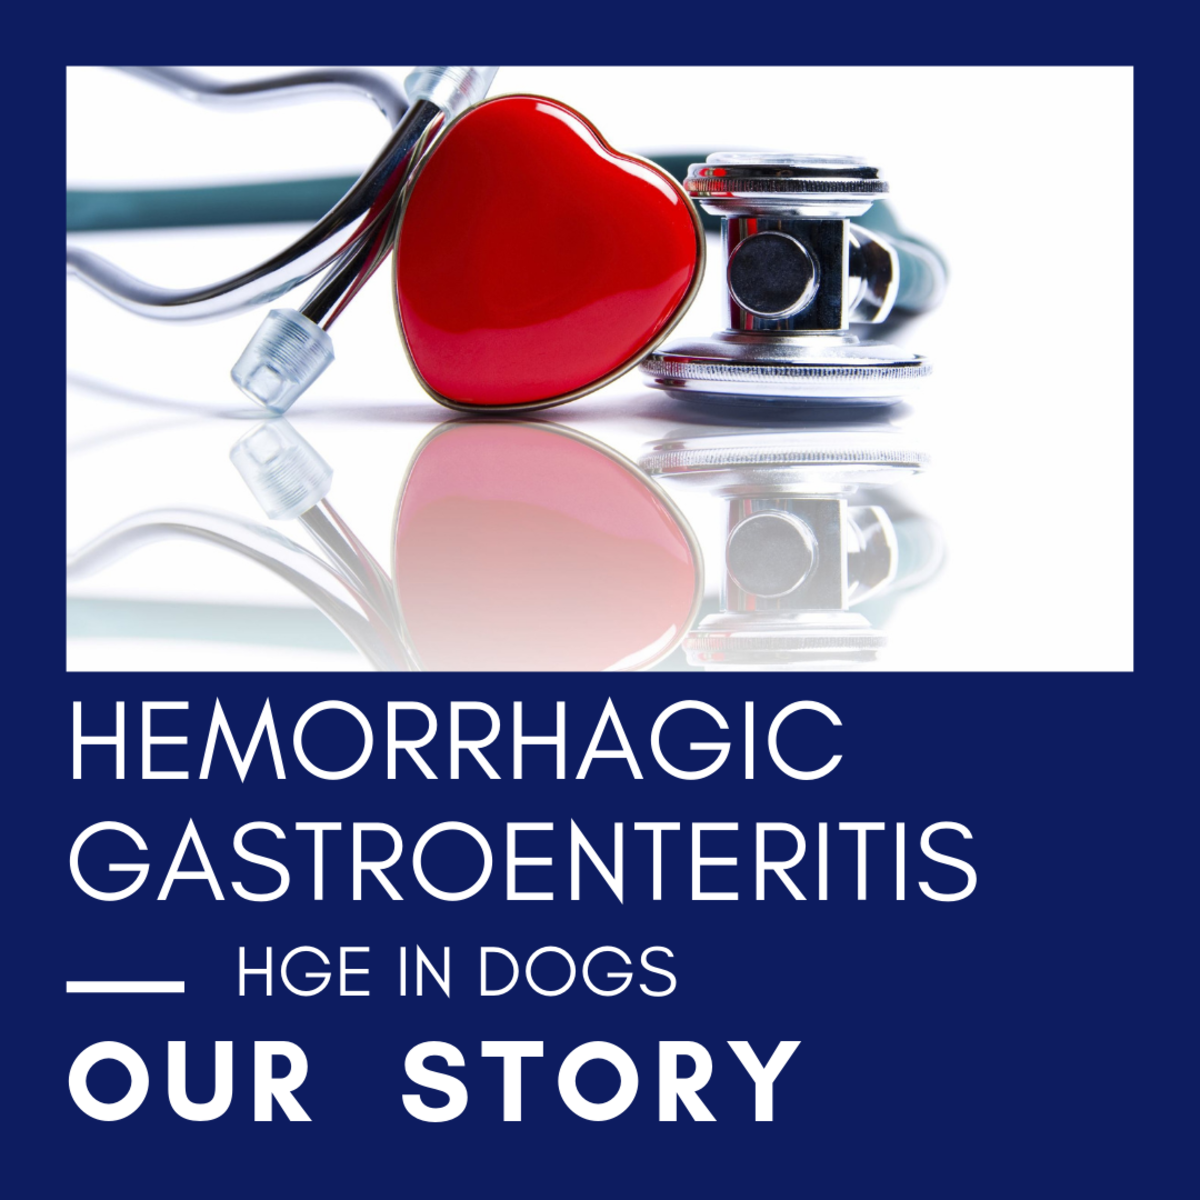 Hemorrhagic Gastroenteritis in Dogs